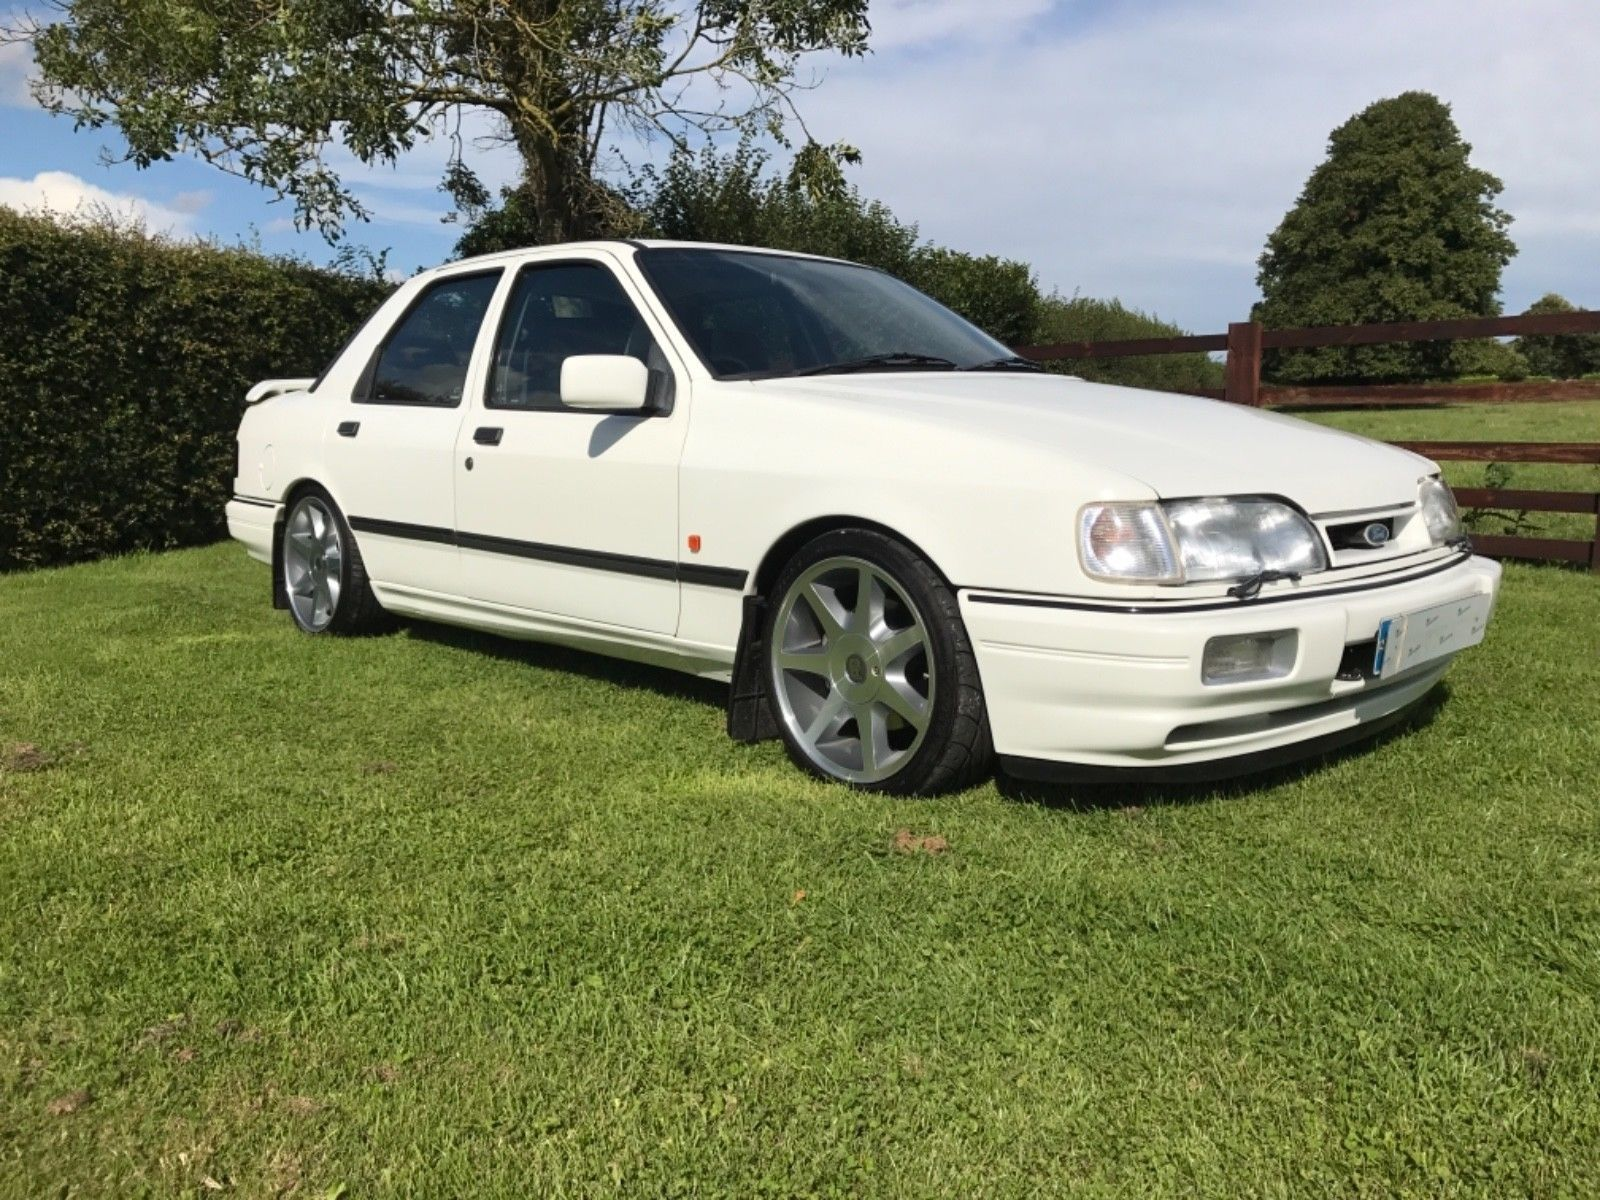 This Ford Sierra Sapphire Cosworth 2wd 1990 Big Spec 350bhp Vgc Fsh Vgc Is For Sale Ford Sierra Sierra Ford